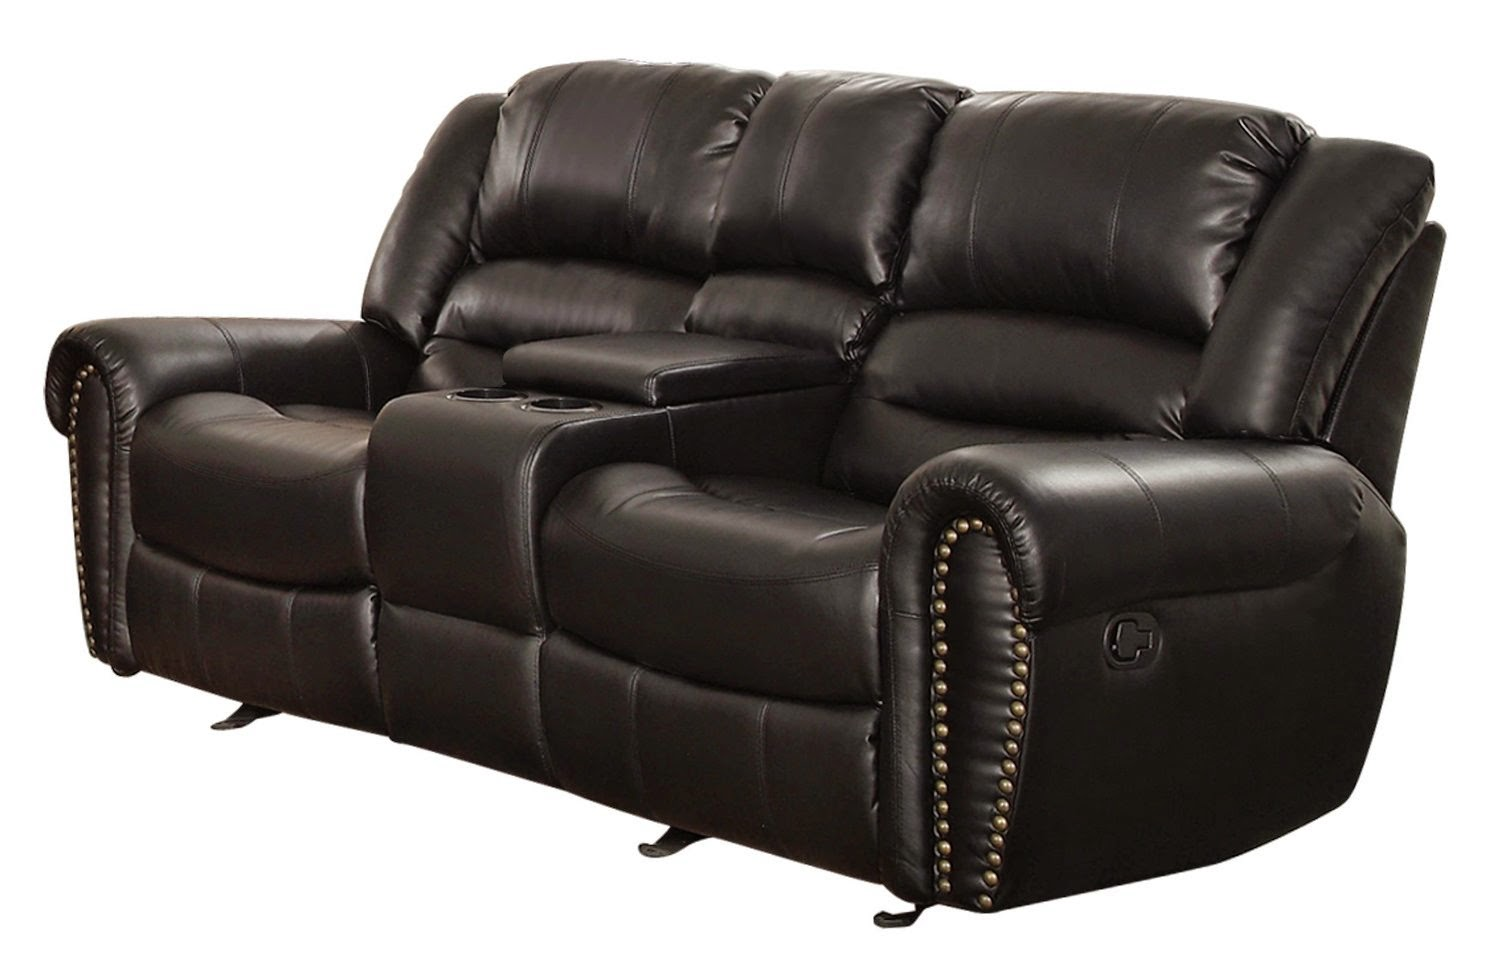 recliner sofas leather tiendas cama baratos barcelona sofa reviews black 2 seater